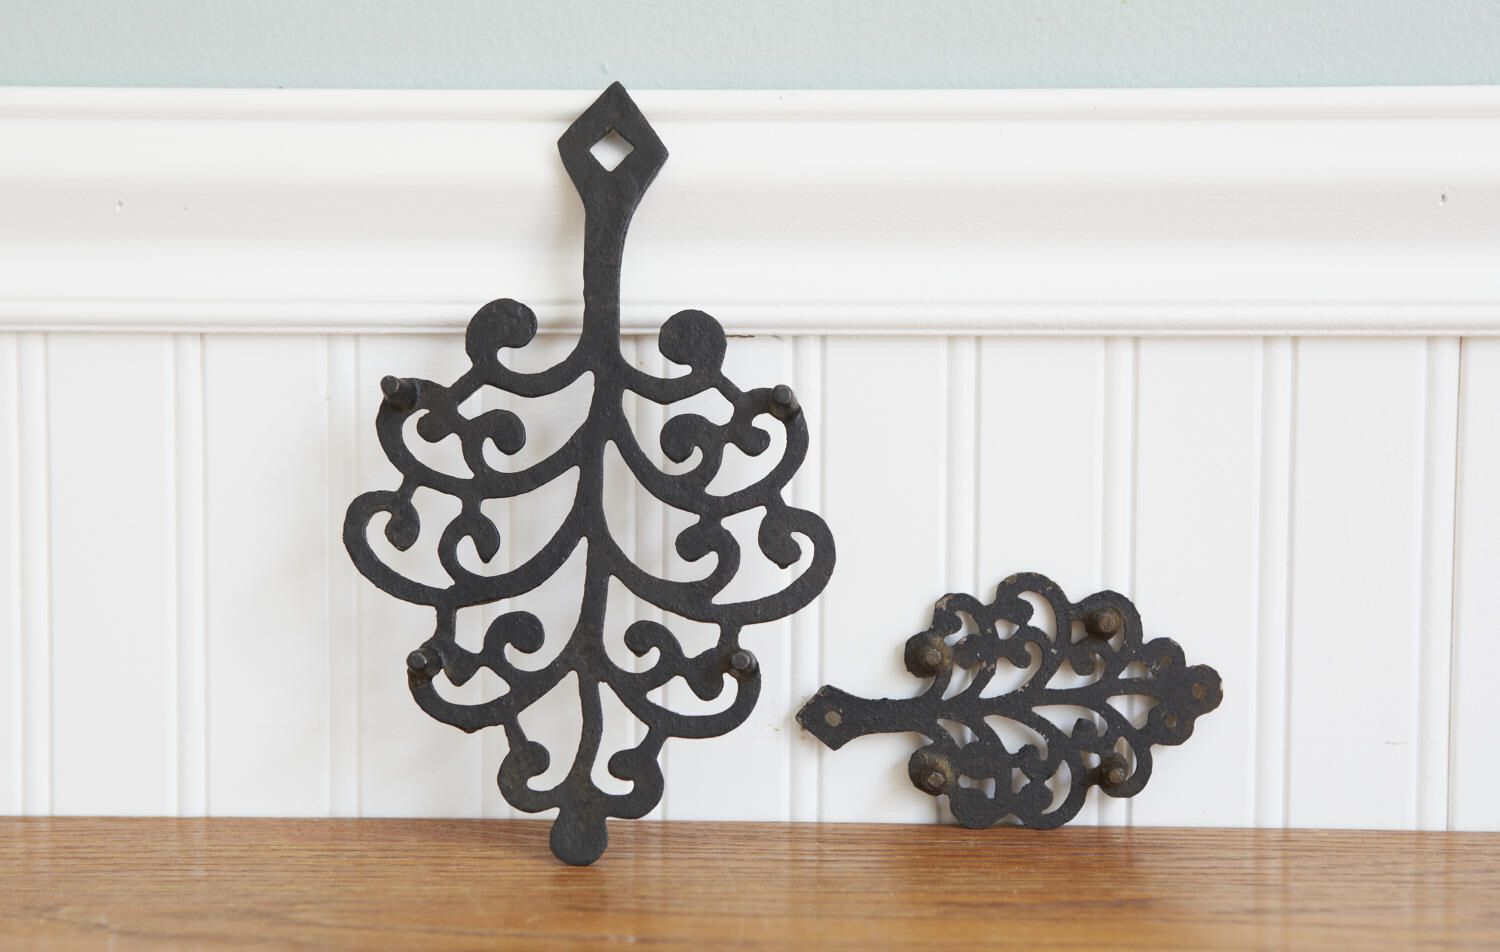 Cast iron kitchen trivet tea pot stand metal hot dish tray cookware - Vintage Cast Iron Trivets Kitchen Decor Hot Plate Footed Matching Trivets Rustic